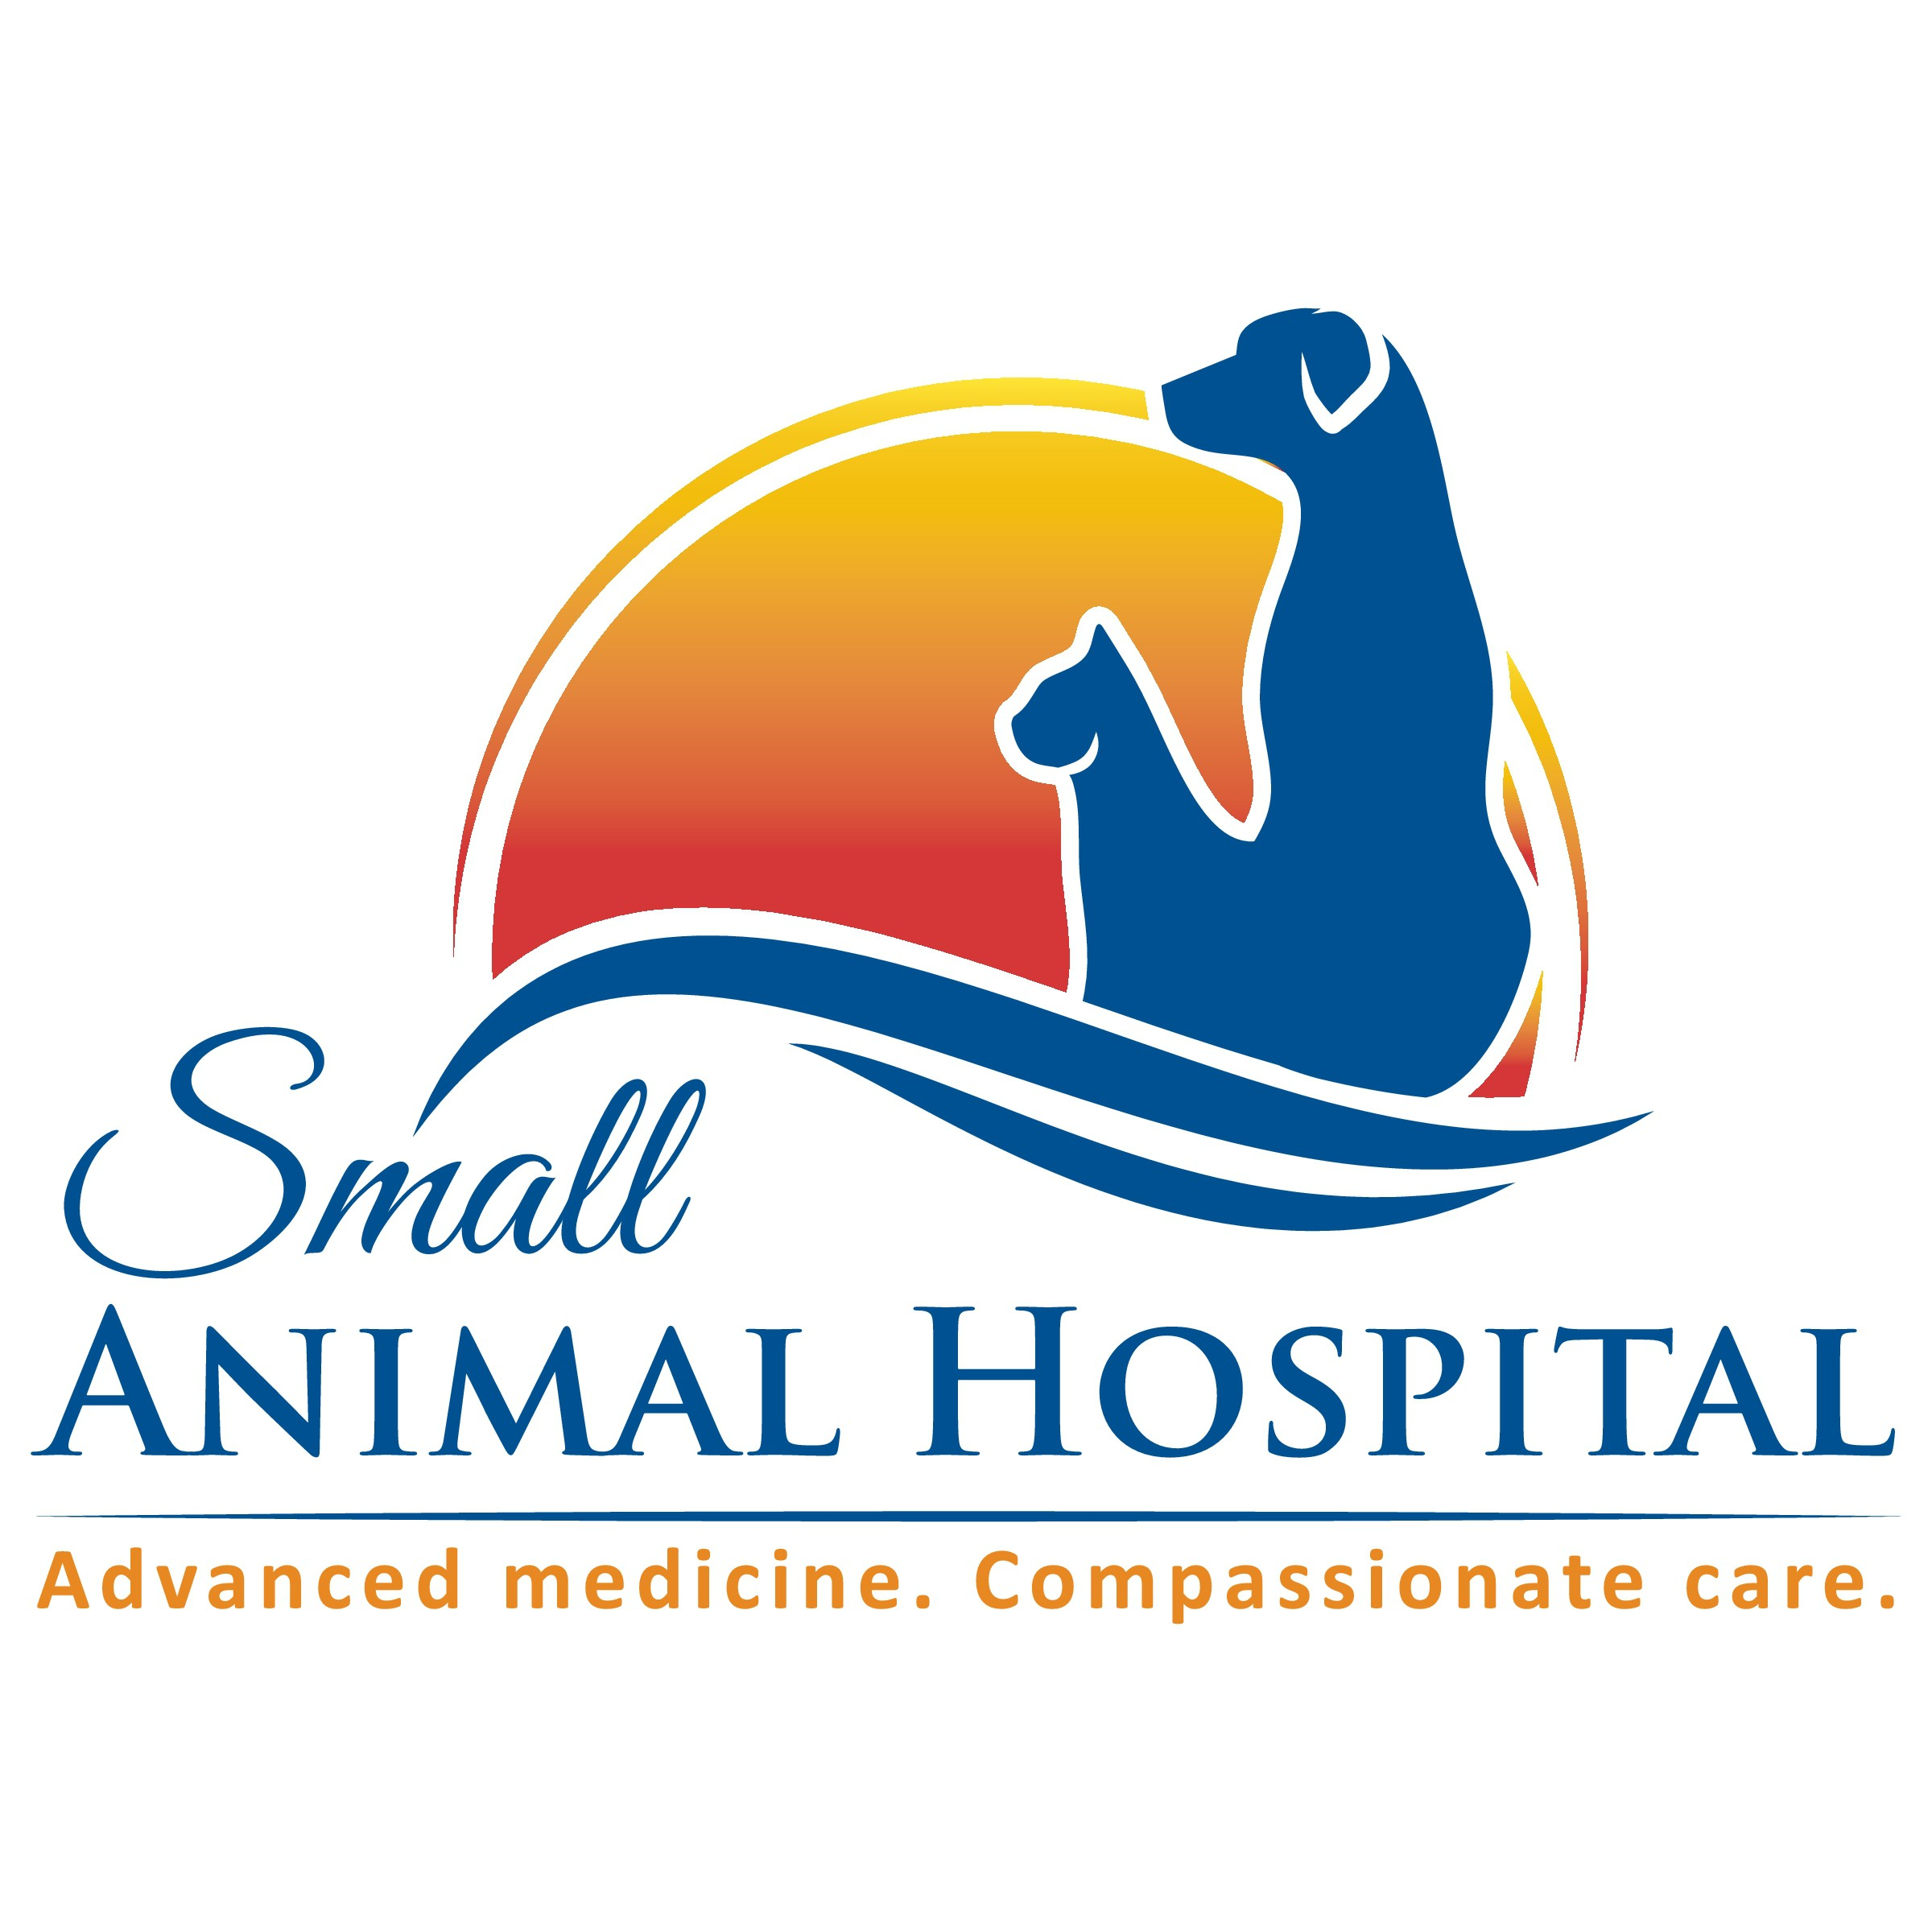 Create a warm, clean logo for an established veterinary practice